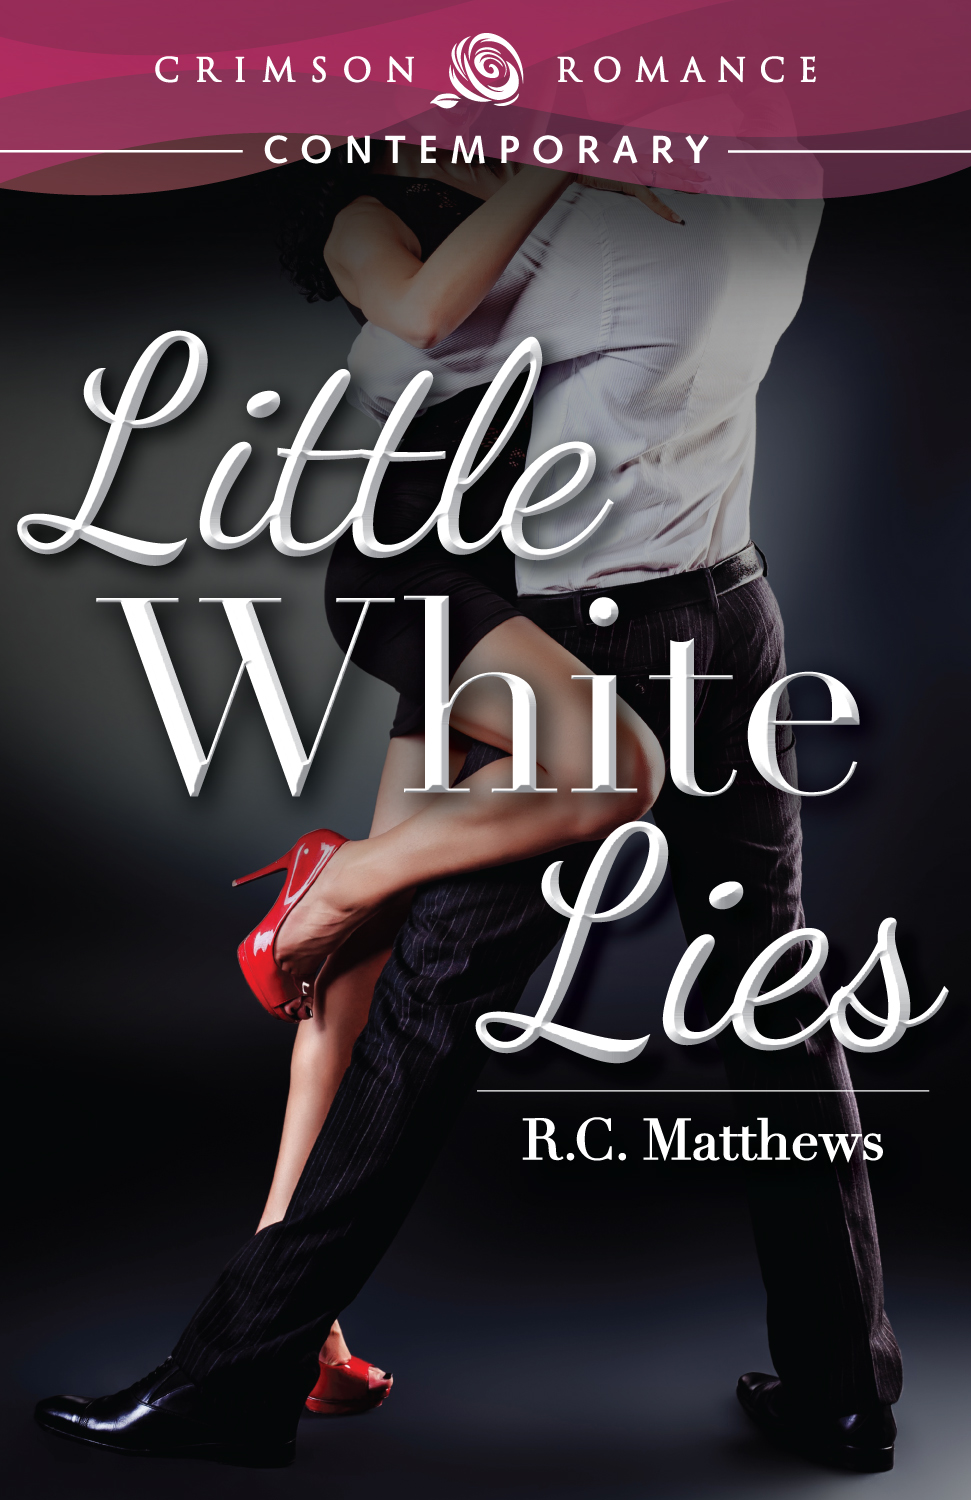 Excerpt: Little White Lies